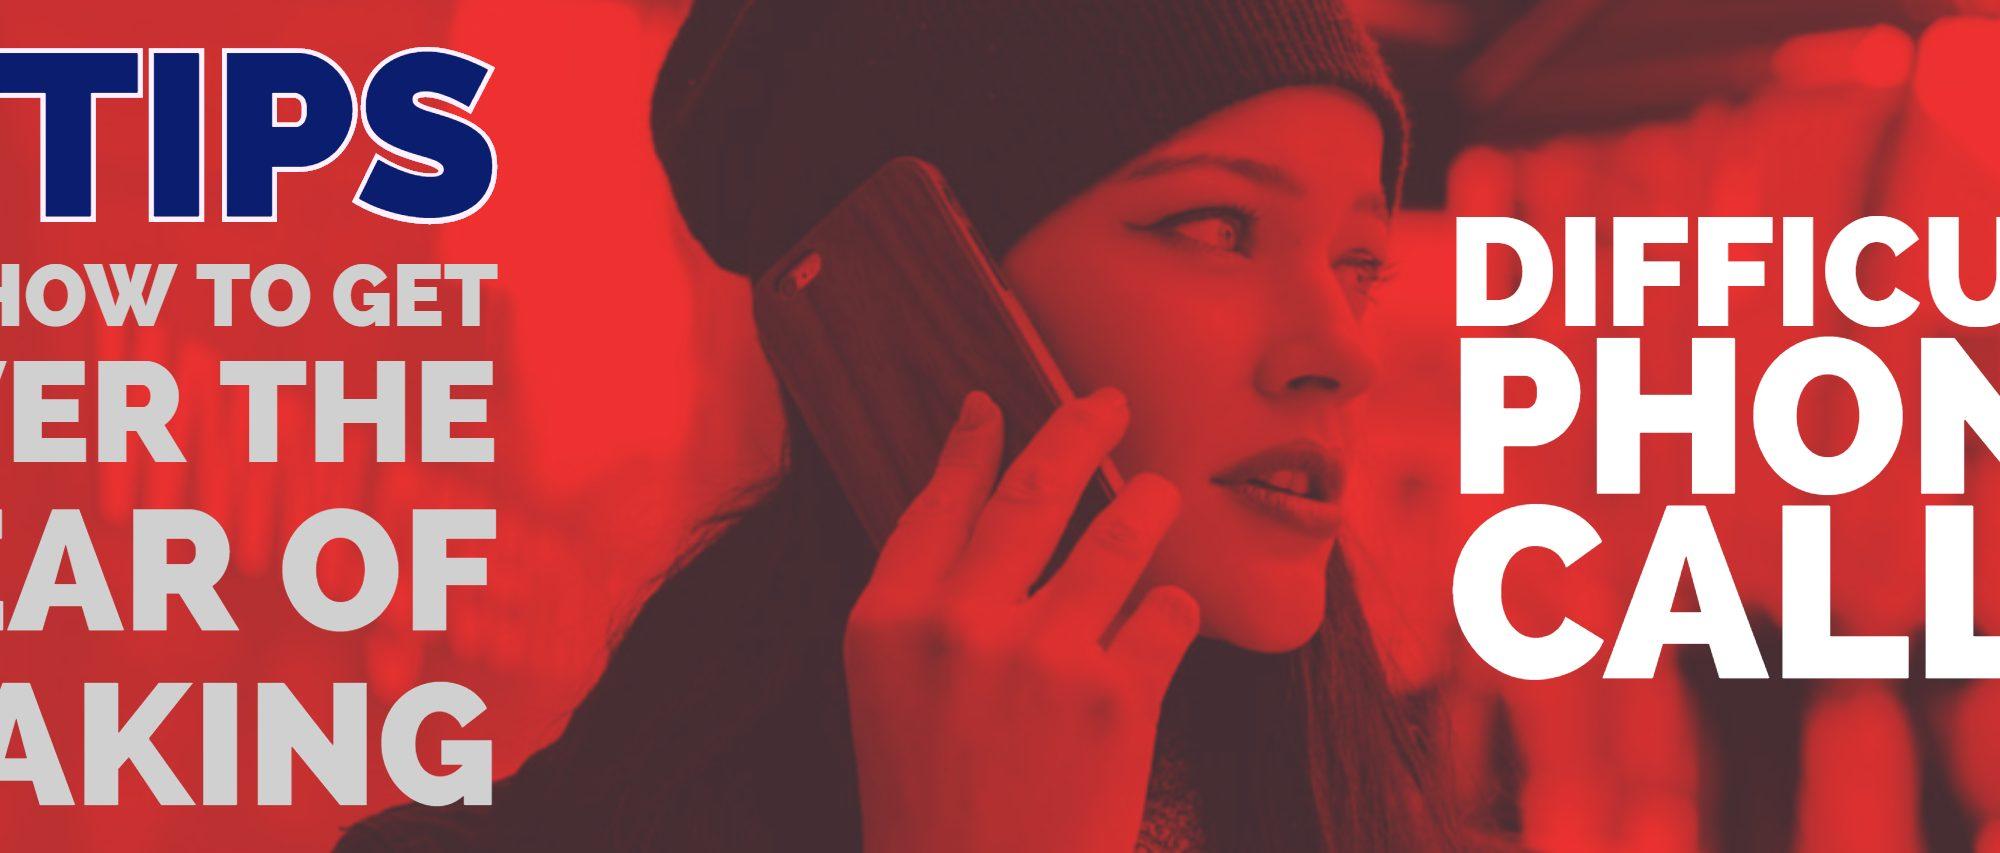 3 Tips On How to Get Over The Feat of Making Difficult Phone Calls